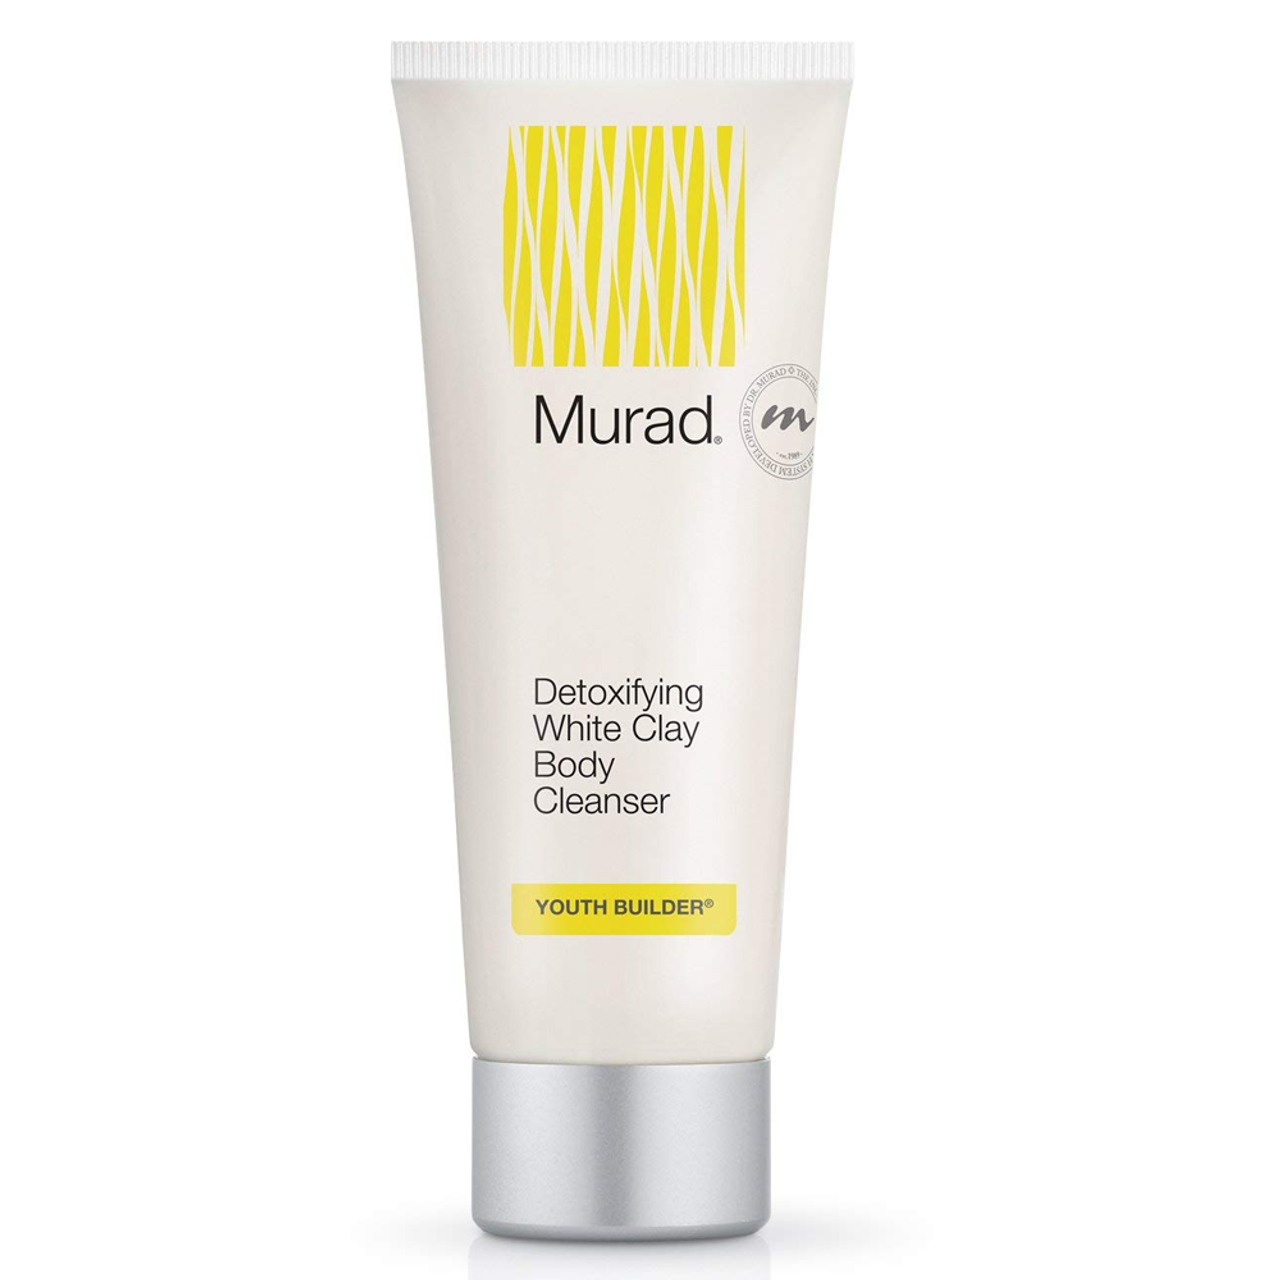 Murad Detoxifying White Clay Body Cleanser 6.75oz